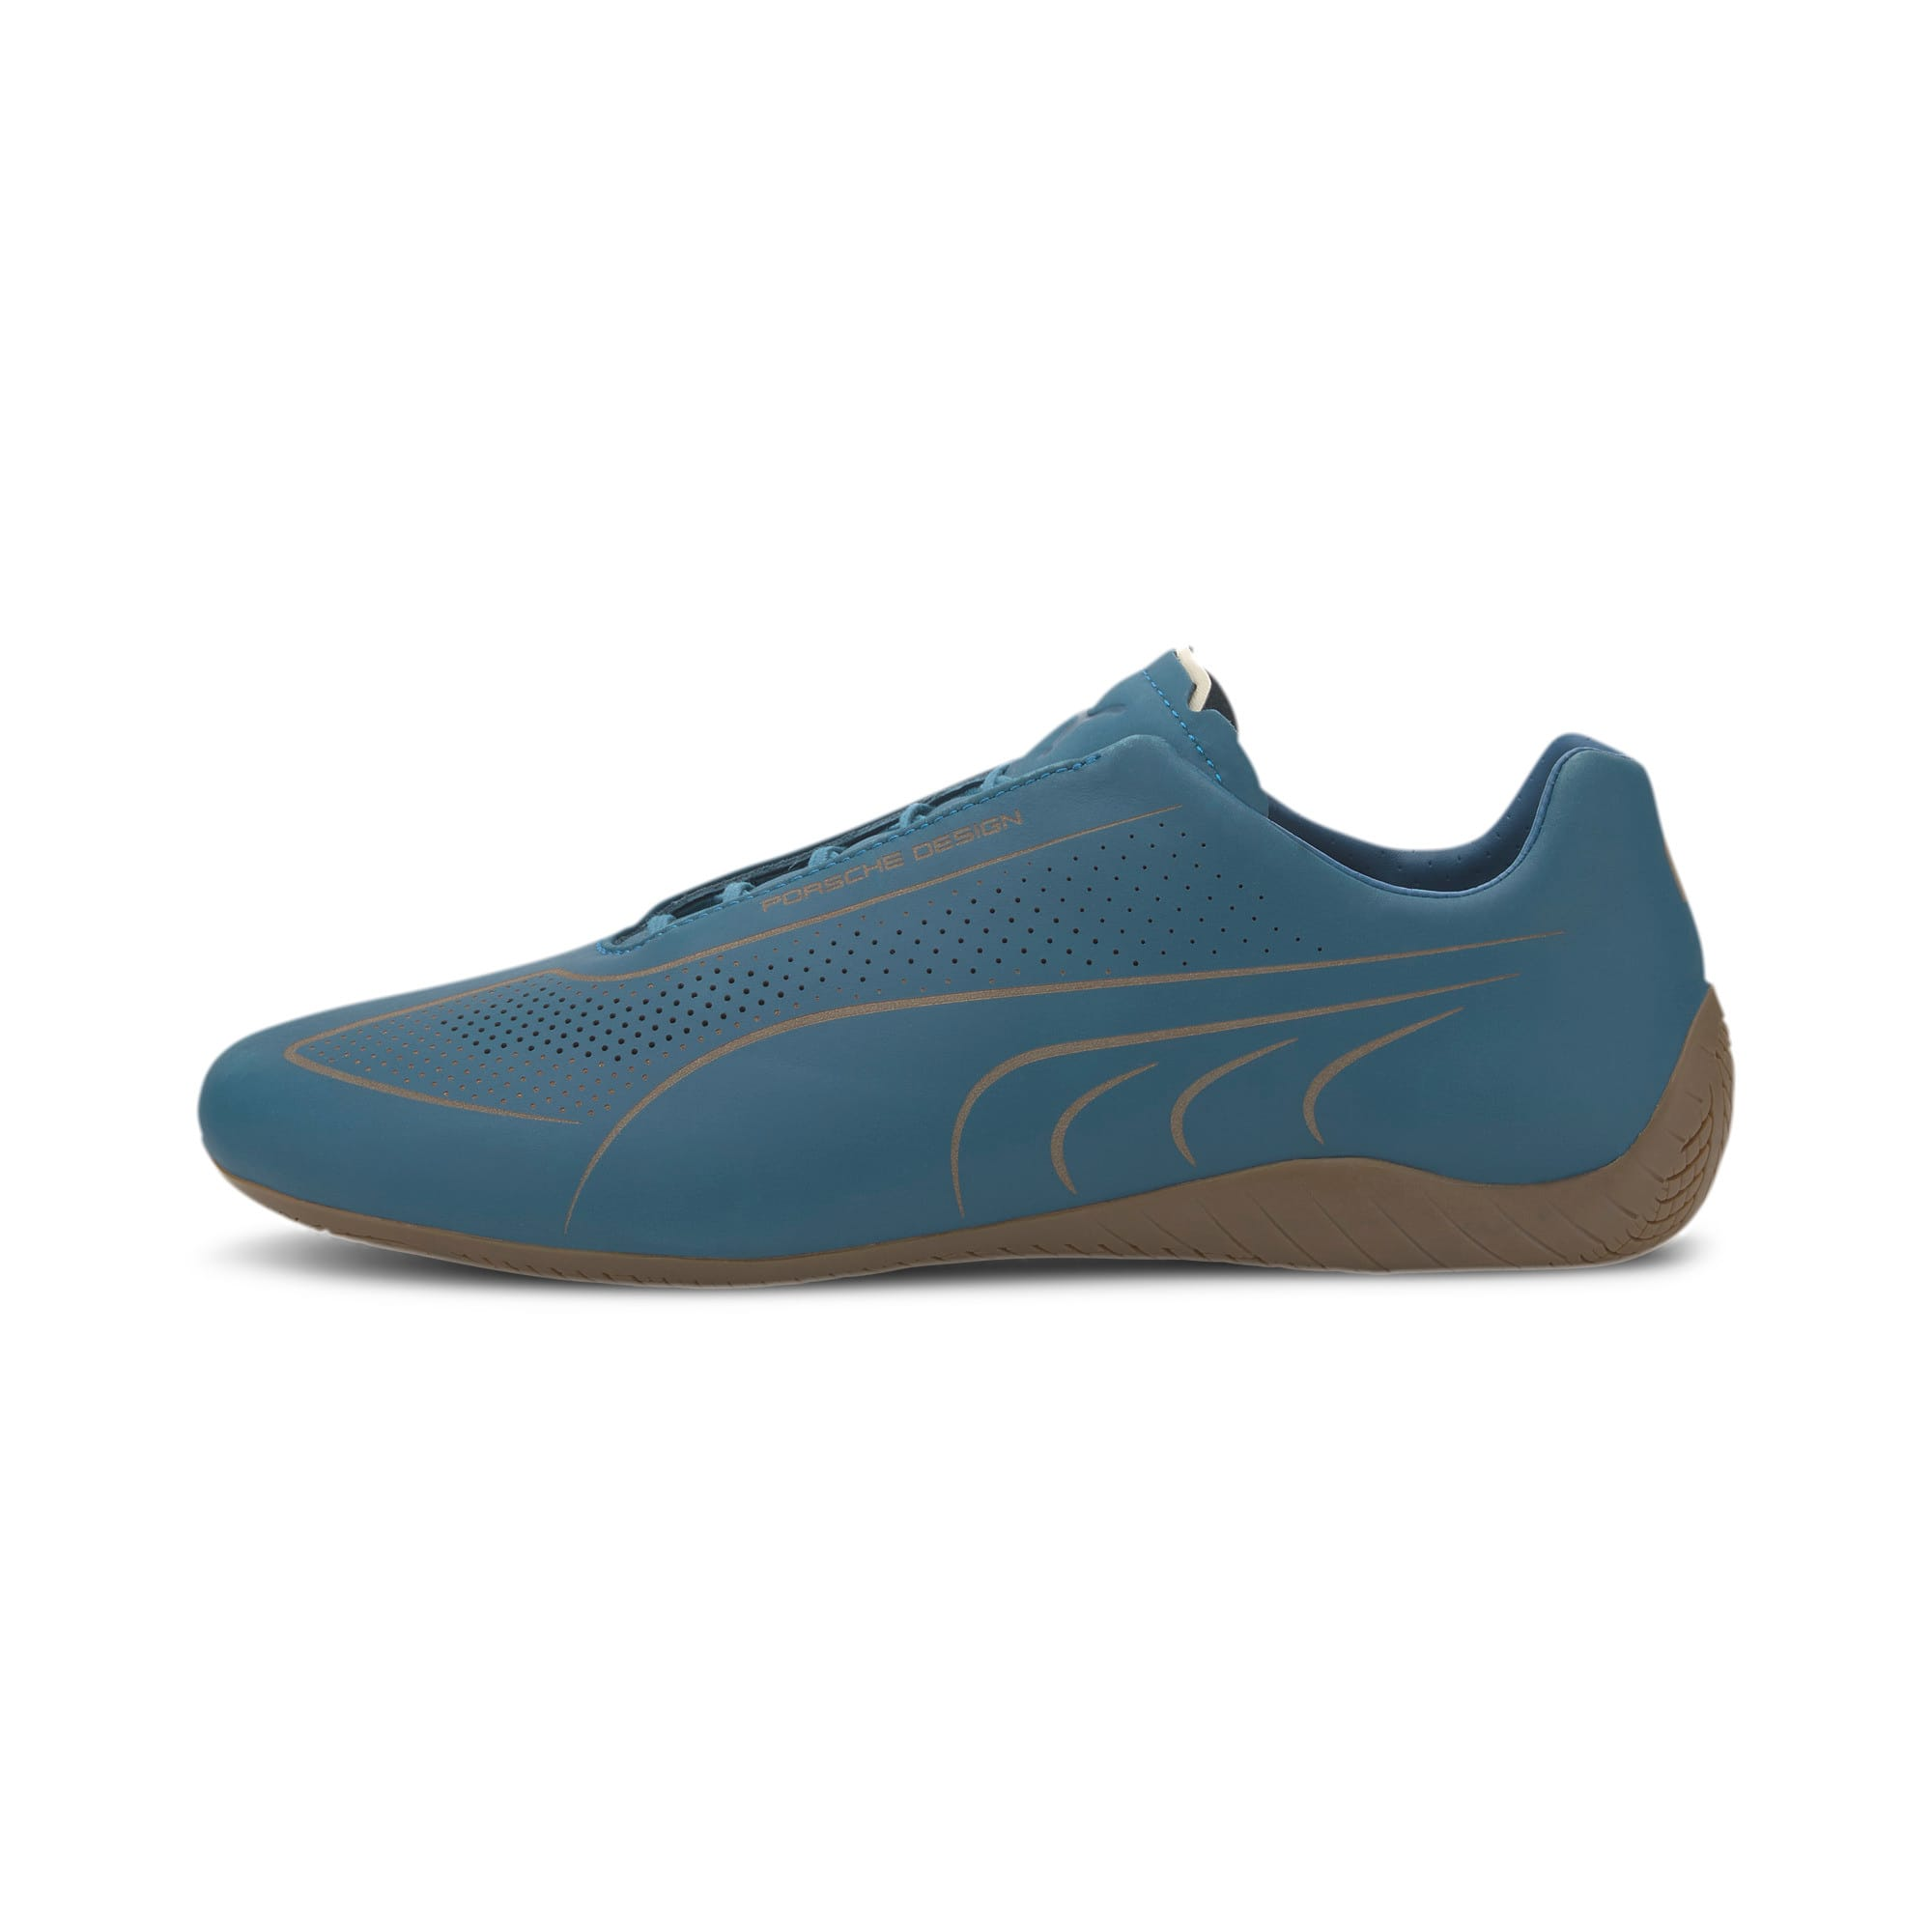 Thumbnail 1 of Porsche Design Speedcat Lux Nubuck Men's Shoes, Moroccan Blue-Moroccan Blue, medium